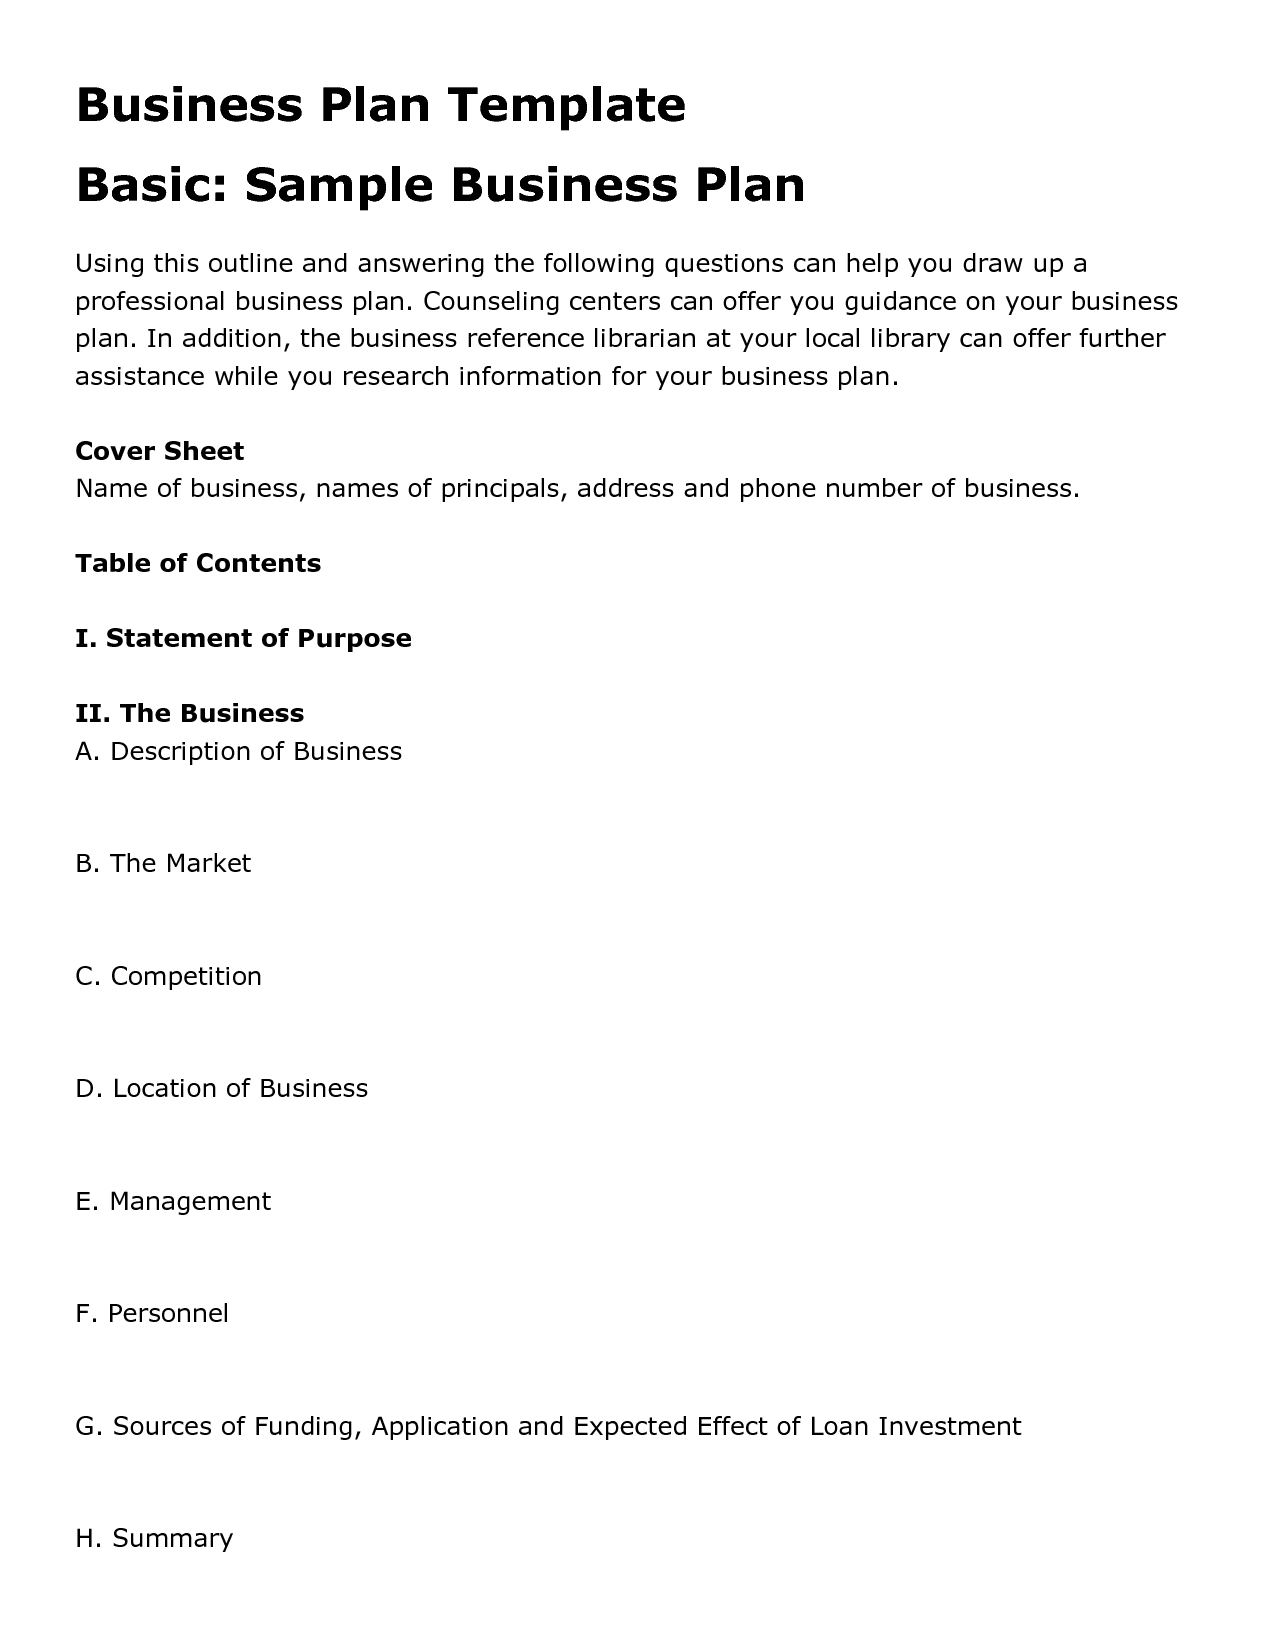 Professional Business Plan Samples, Outlines and Templates